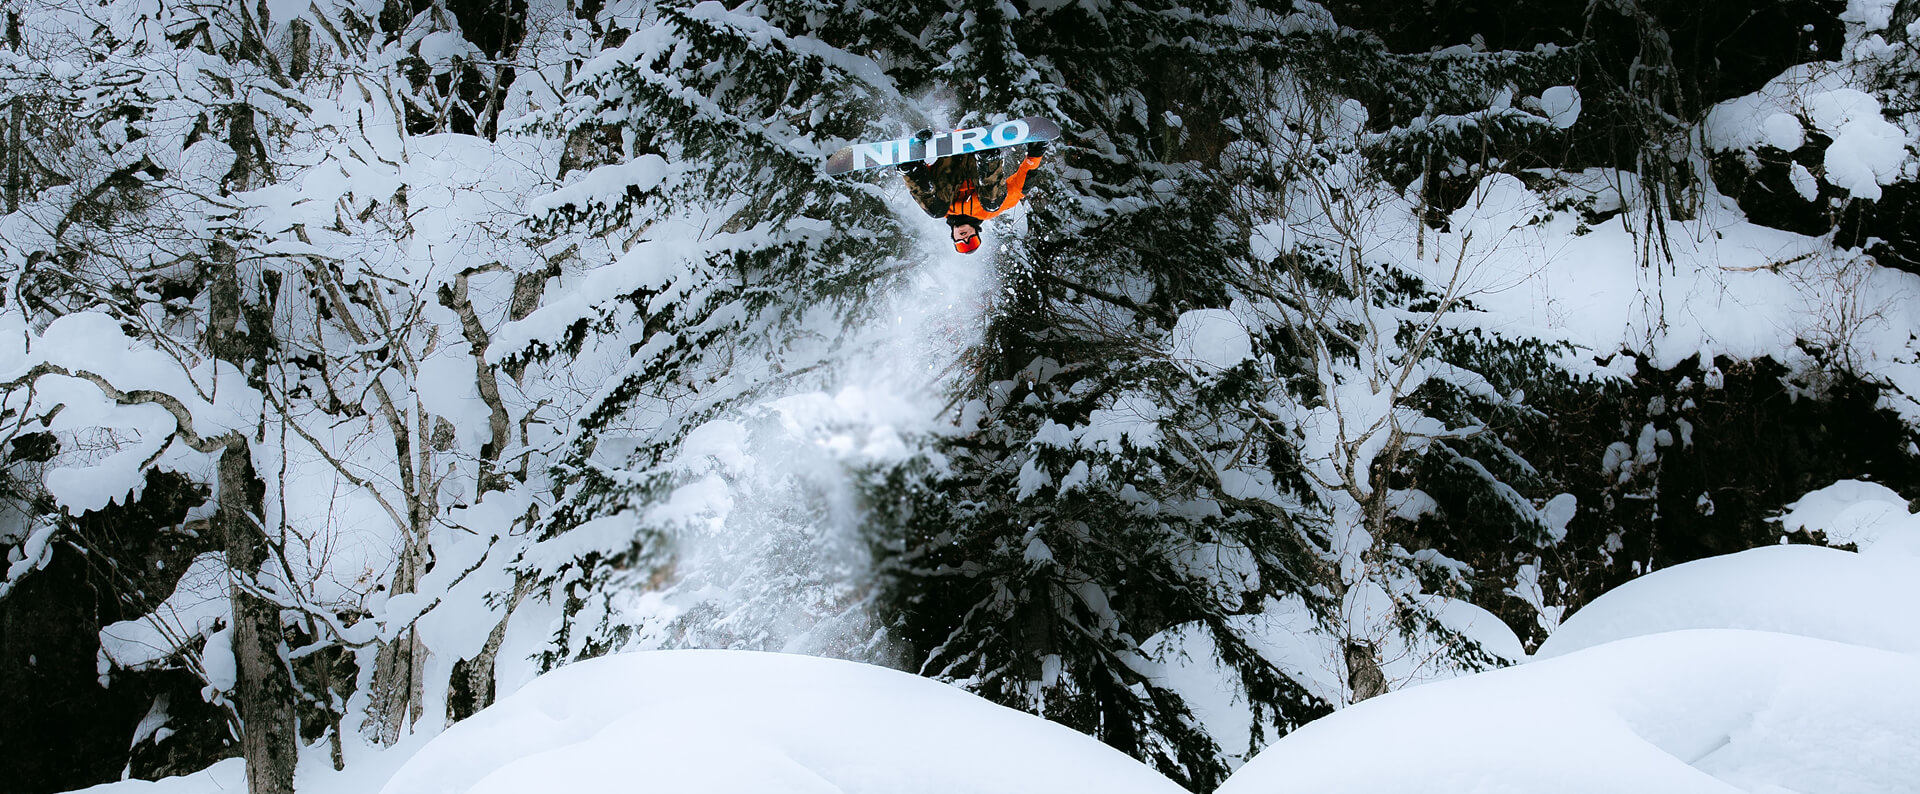 Haibike Hero Victor Delerue doing a backflip on his snowboard in a snowy forest